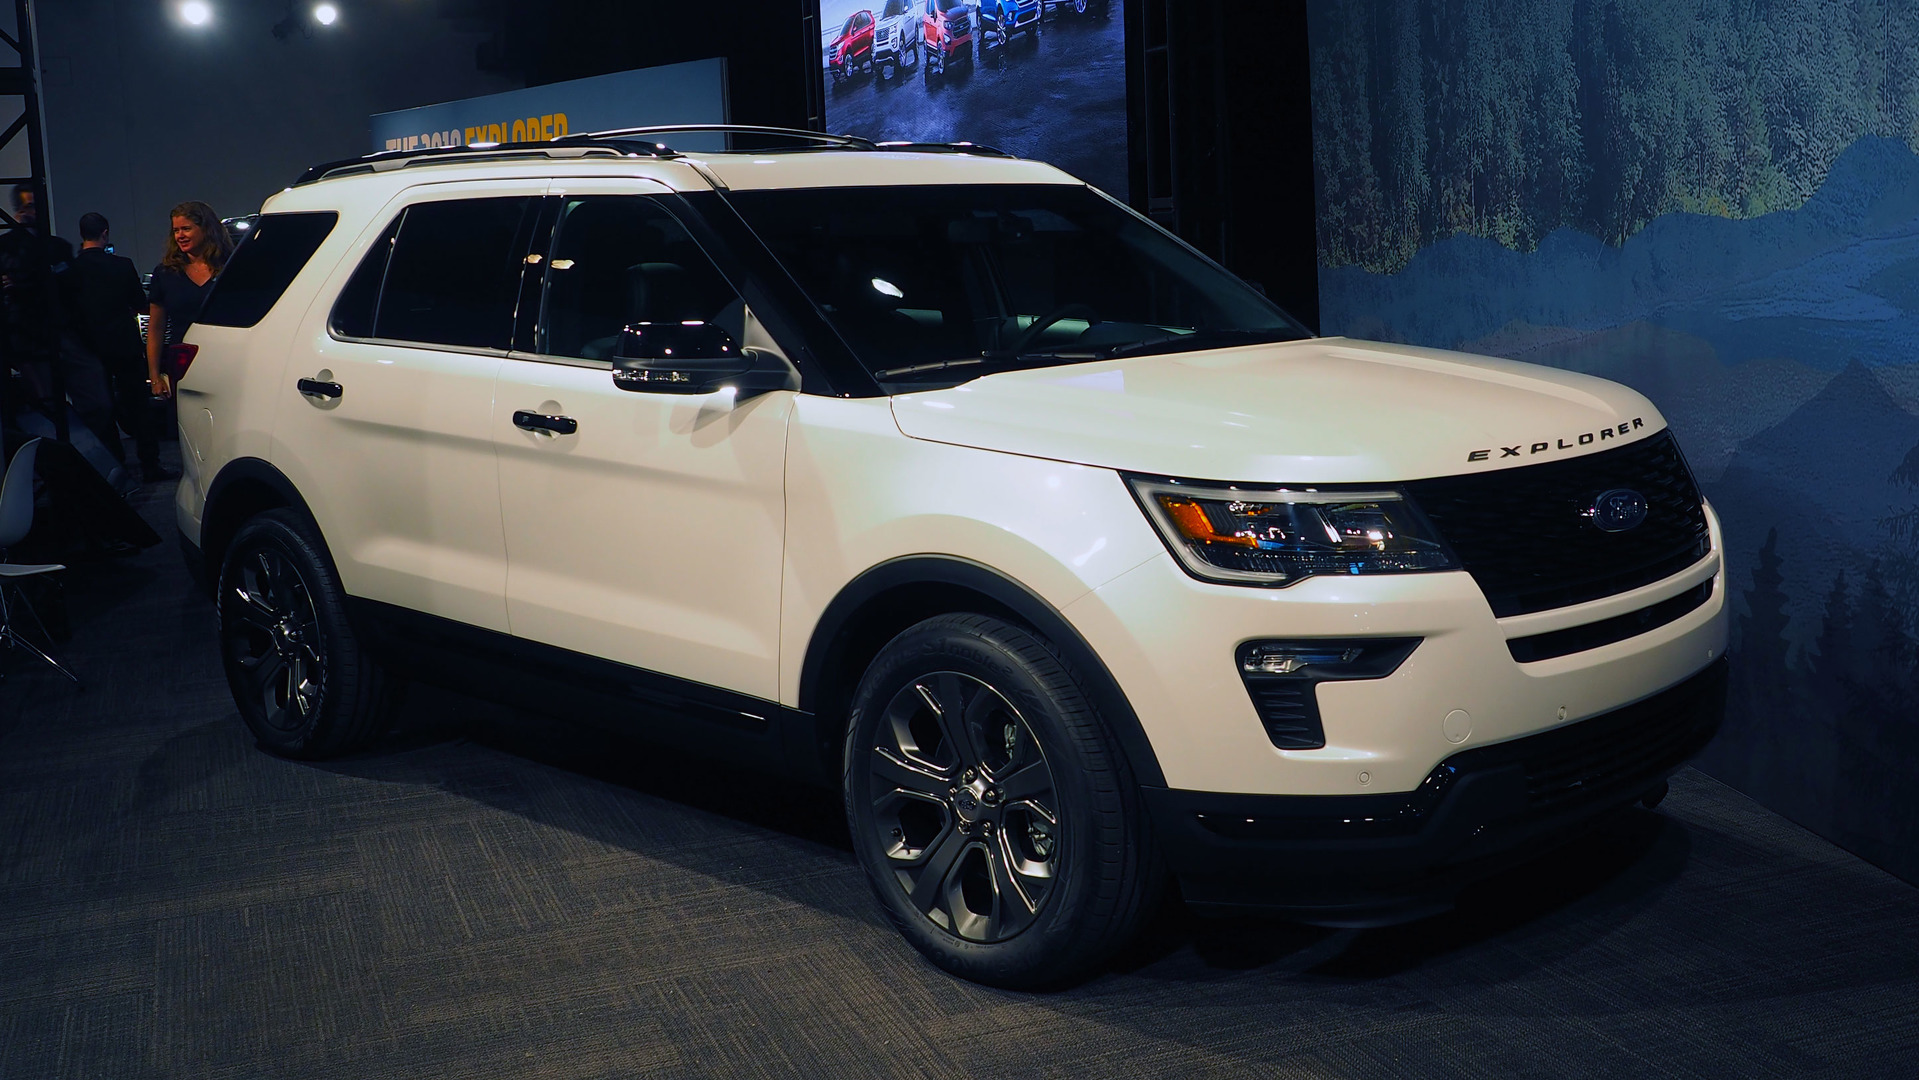 2018 Ford Explorer Updates In New York With More Tech, Safety